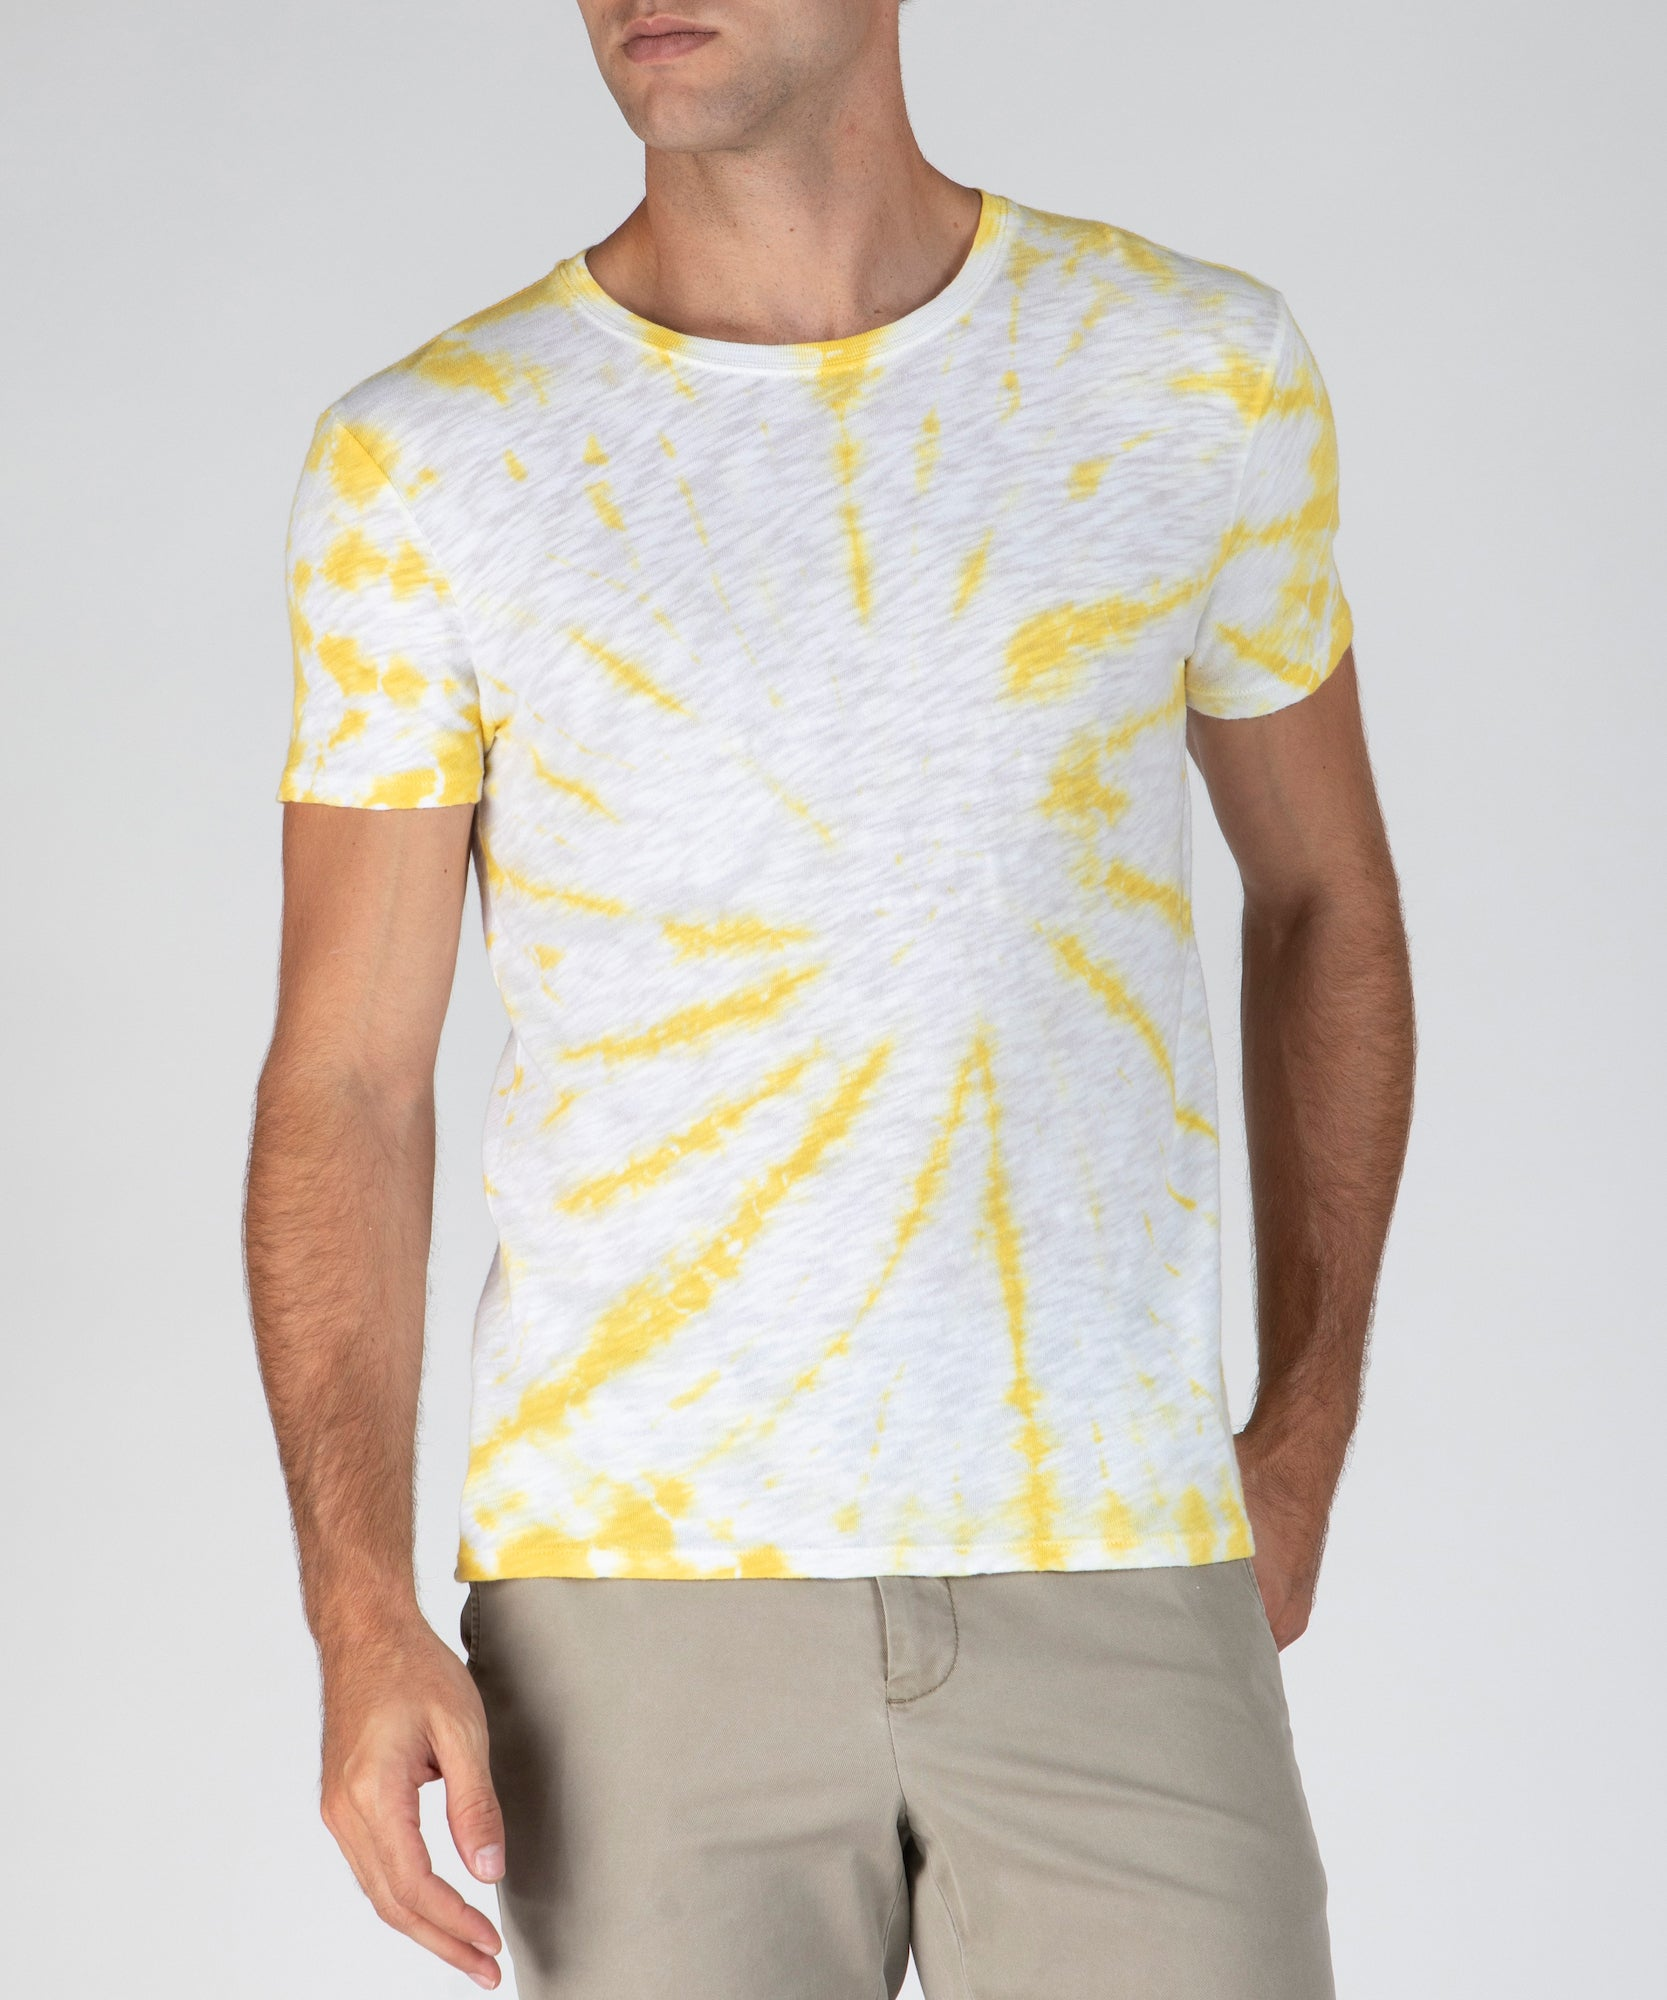 Canary Tie Dye Slub Jersey Crew Neck Tee - Men's Cotton Short Sleeve Tee by ATM Anthony Thomas Melillo